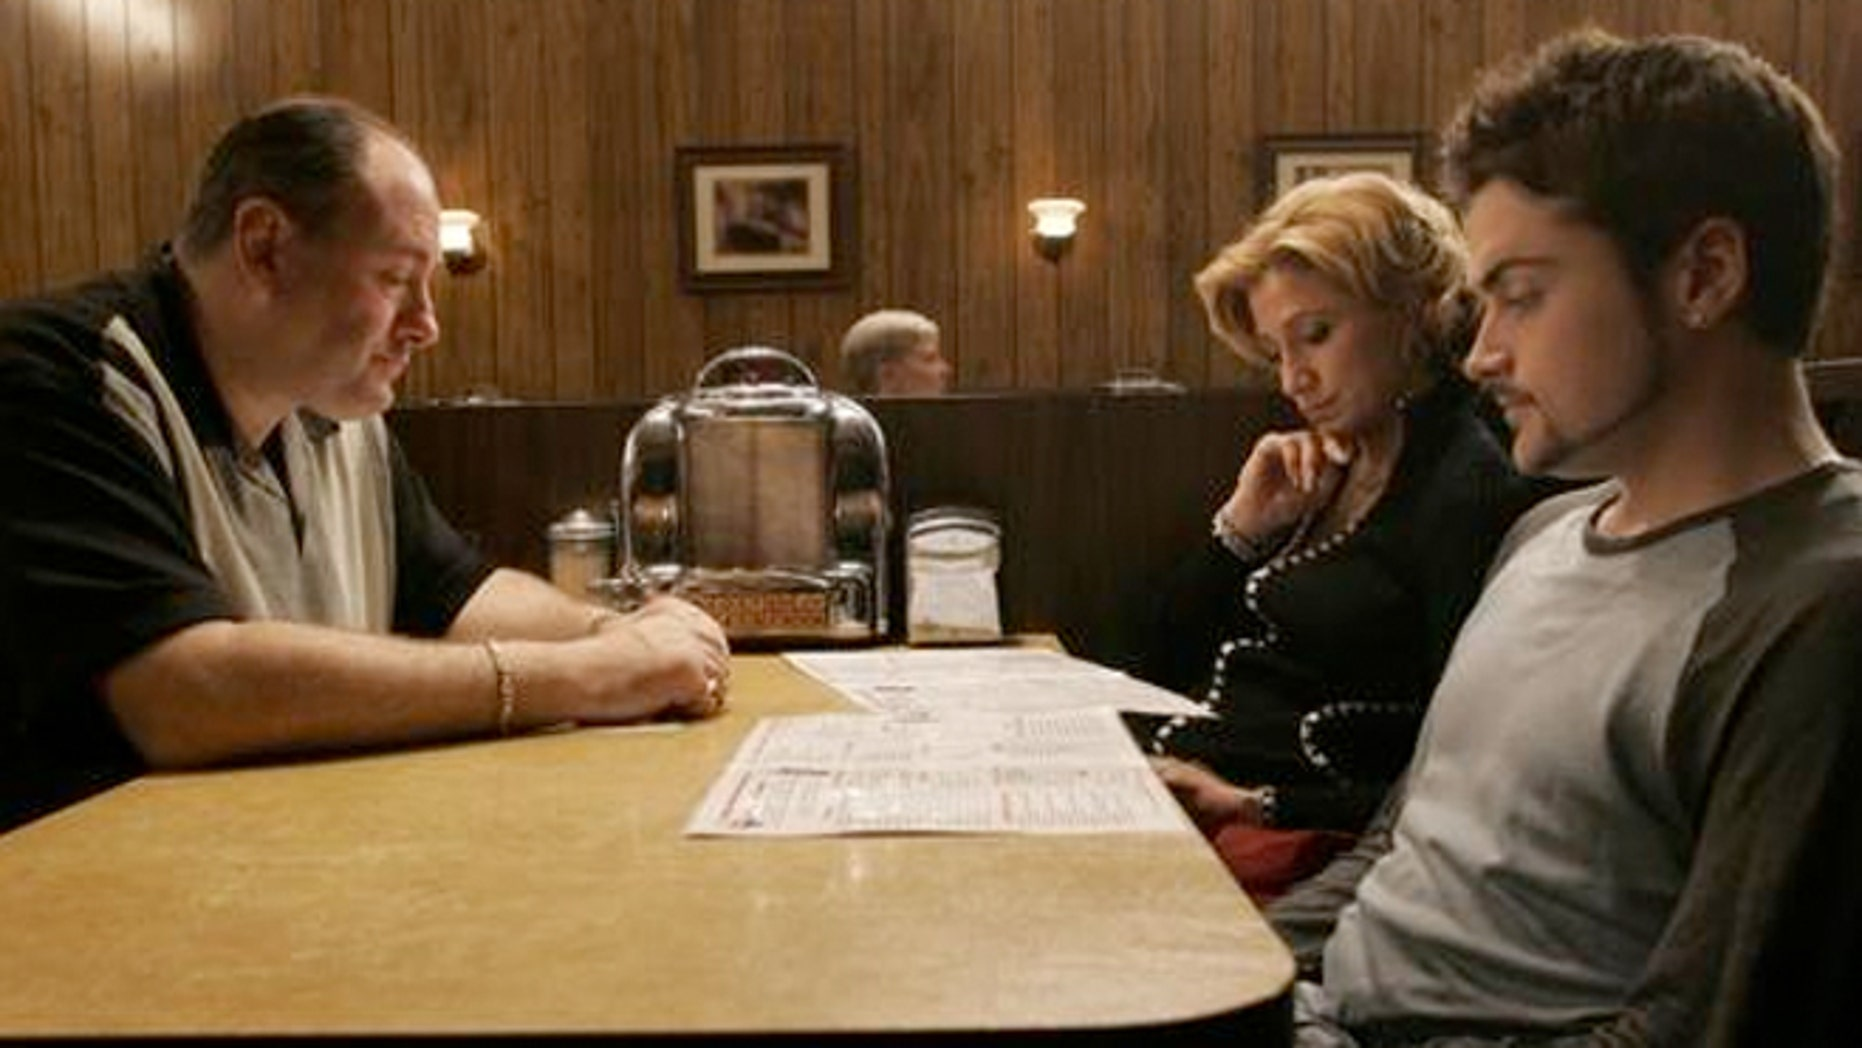 'The Sopranos' prequel movie just got a new title.